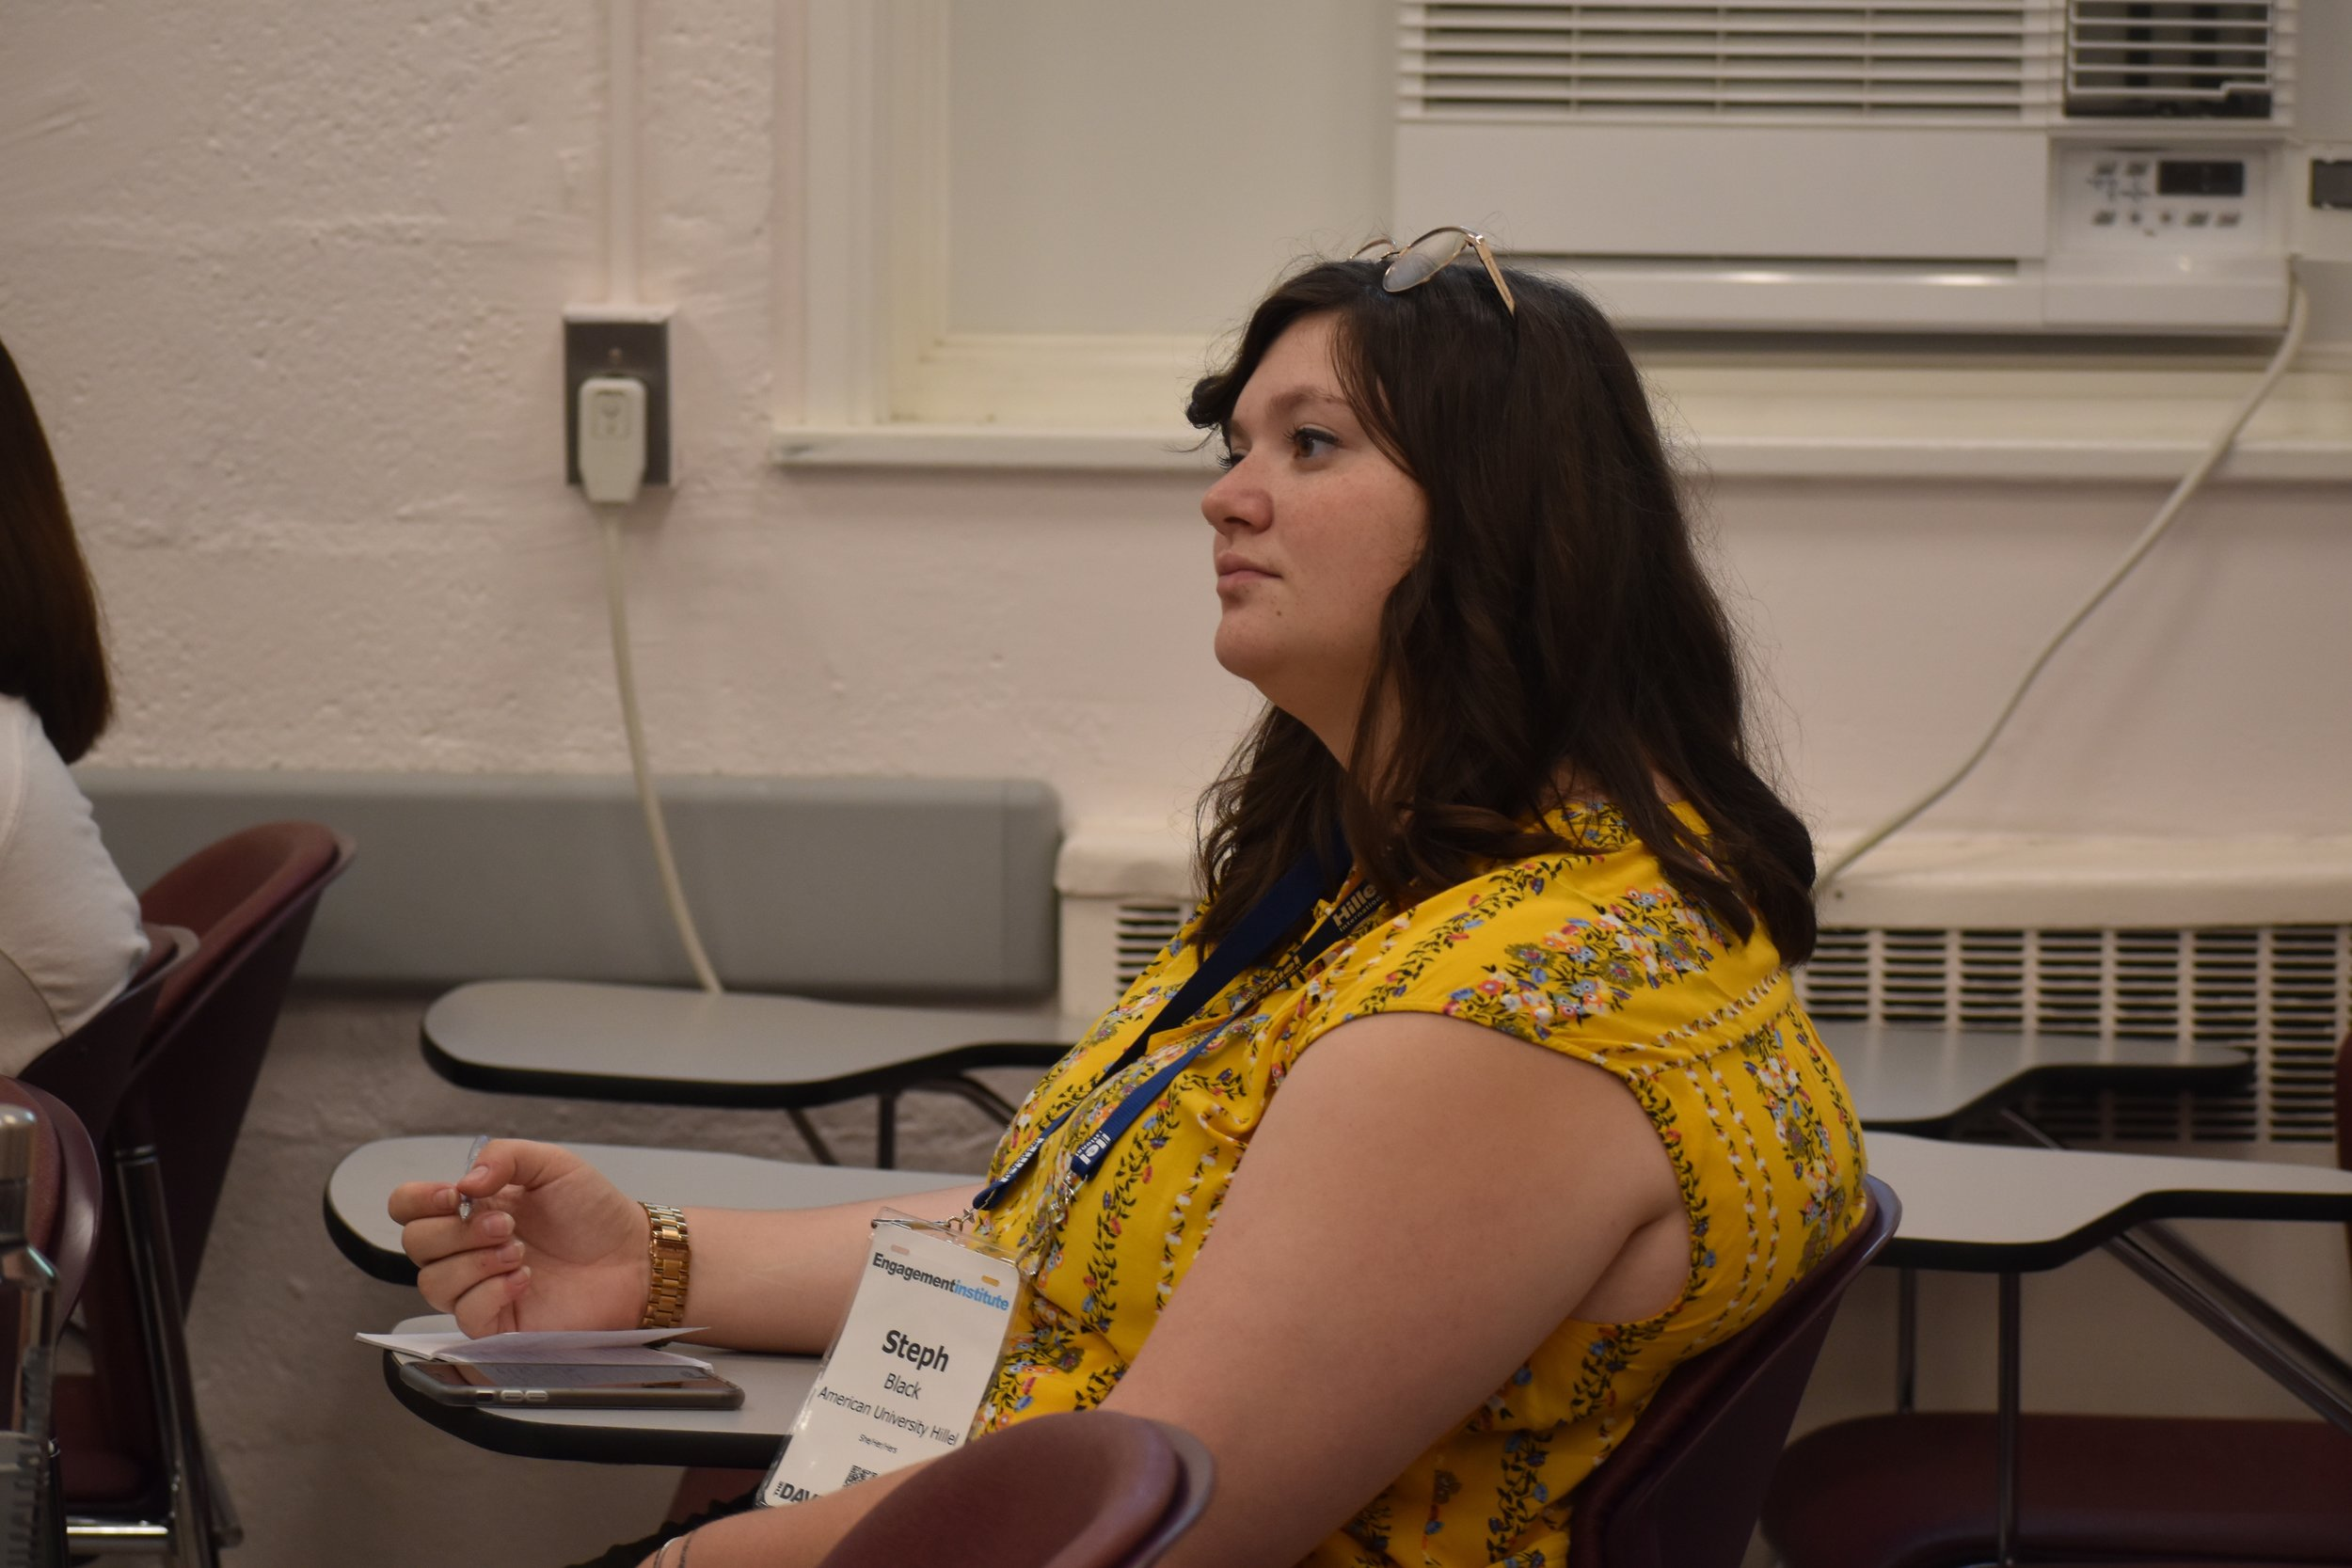 Day 1 of the conference discussed the history of Israel, and providing context to the larger discussion on campus.